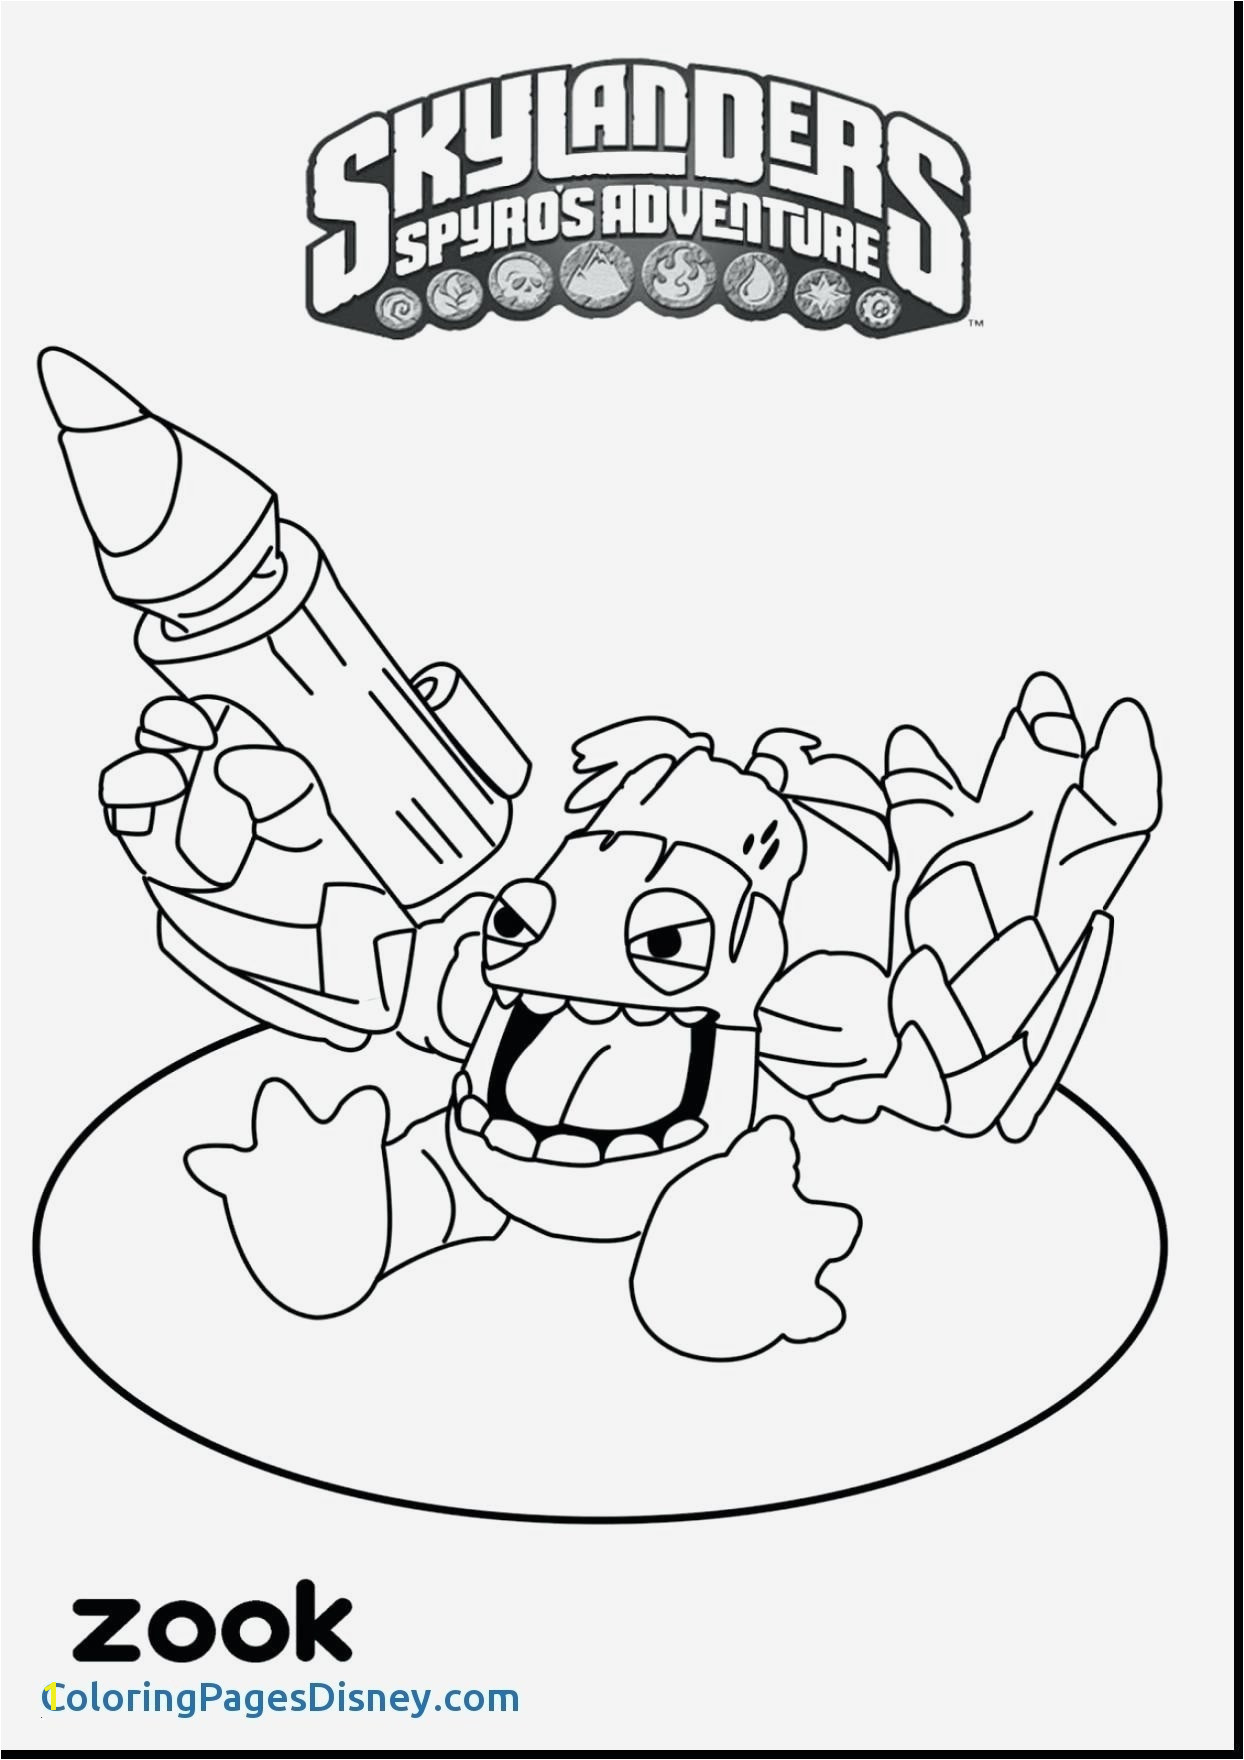 Awesome gingerbread man coloring pages Free 2 t Gingerbread man coloring pages christmas ·